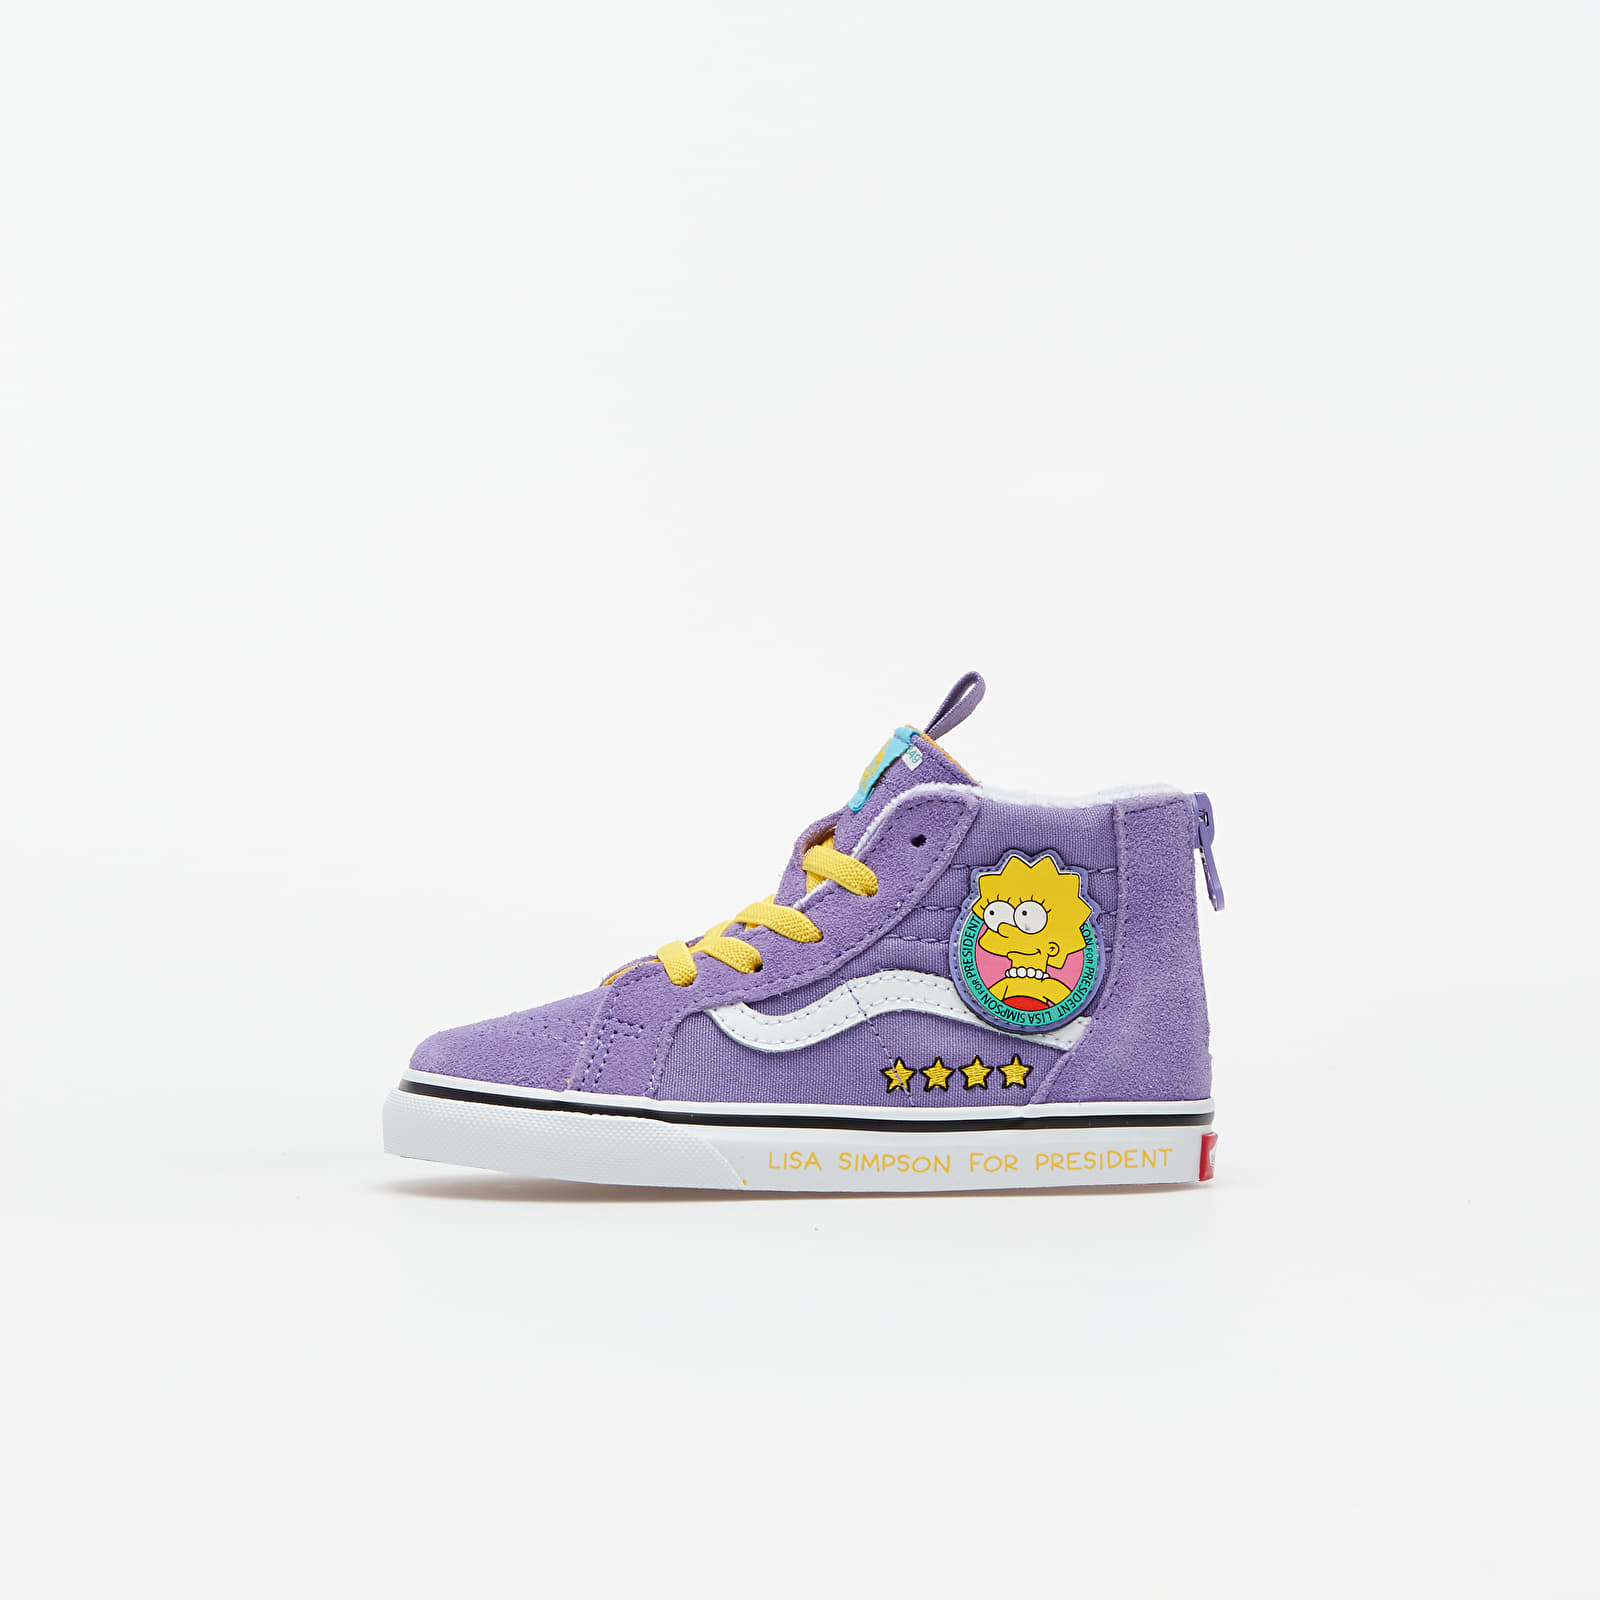 Dječje tenisice Vans Sk8-Hi Zip (The Simpsons) Lisa 4 Prez